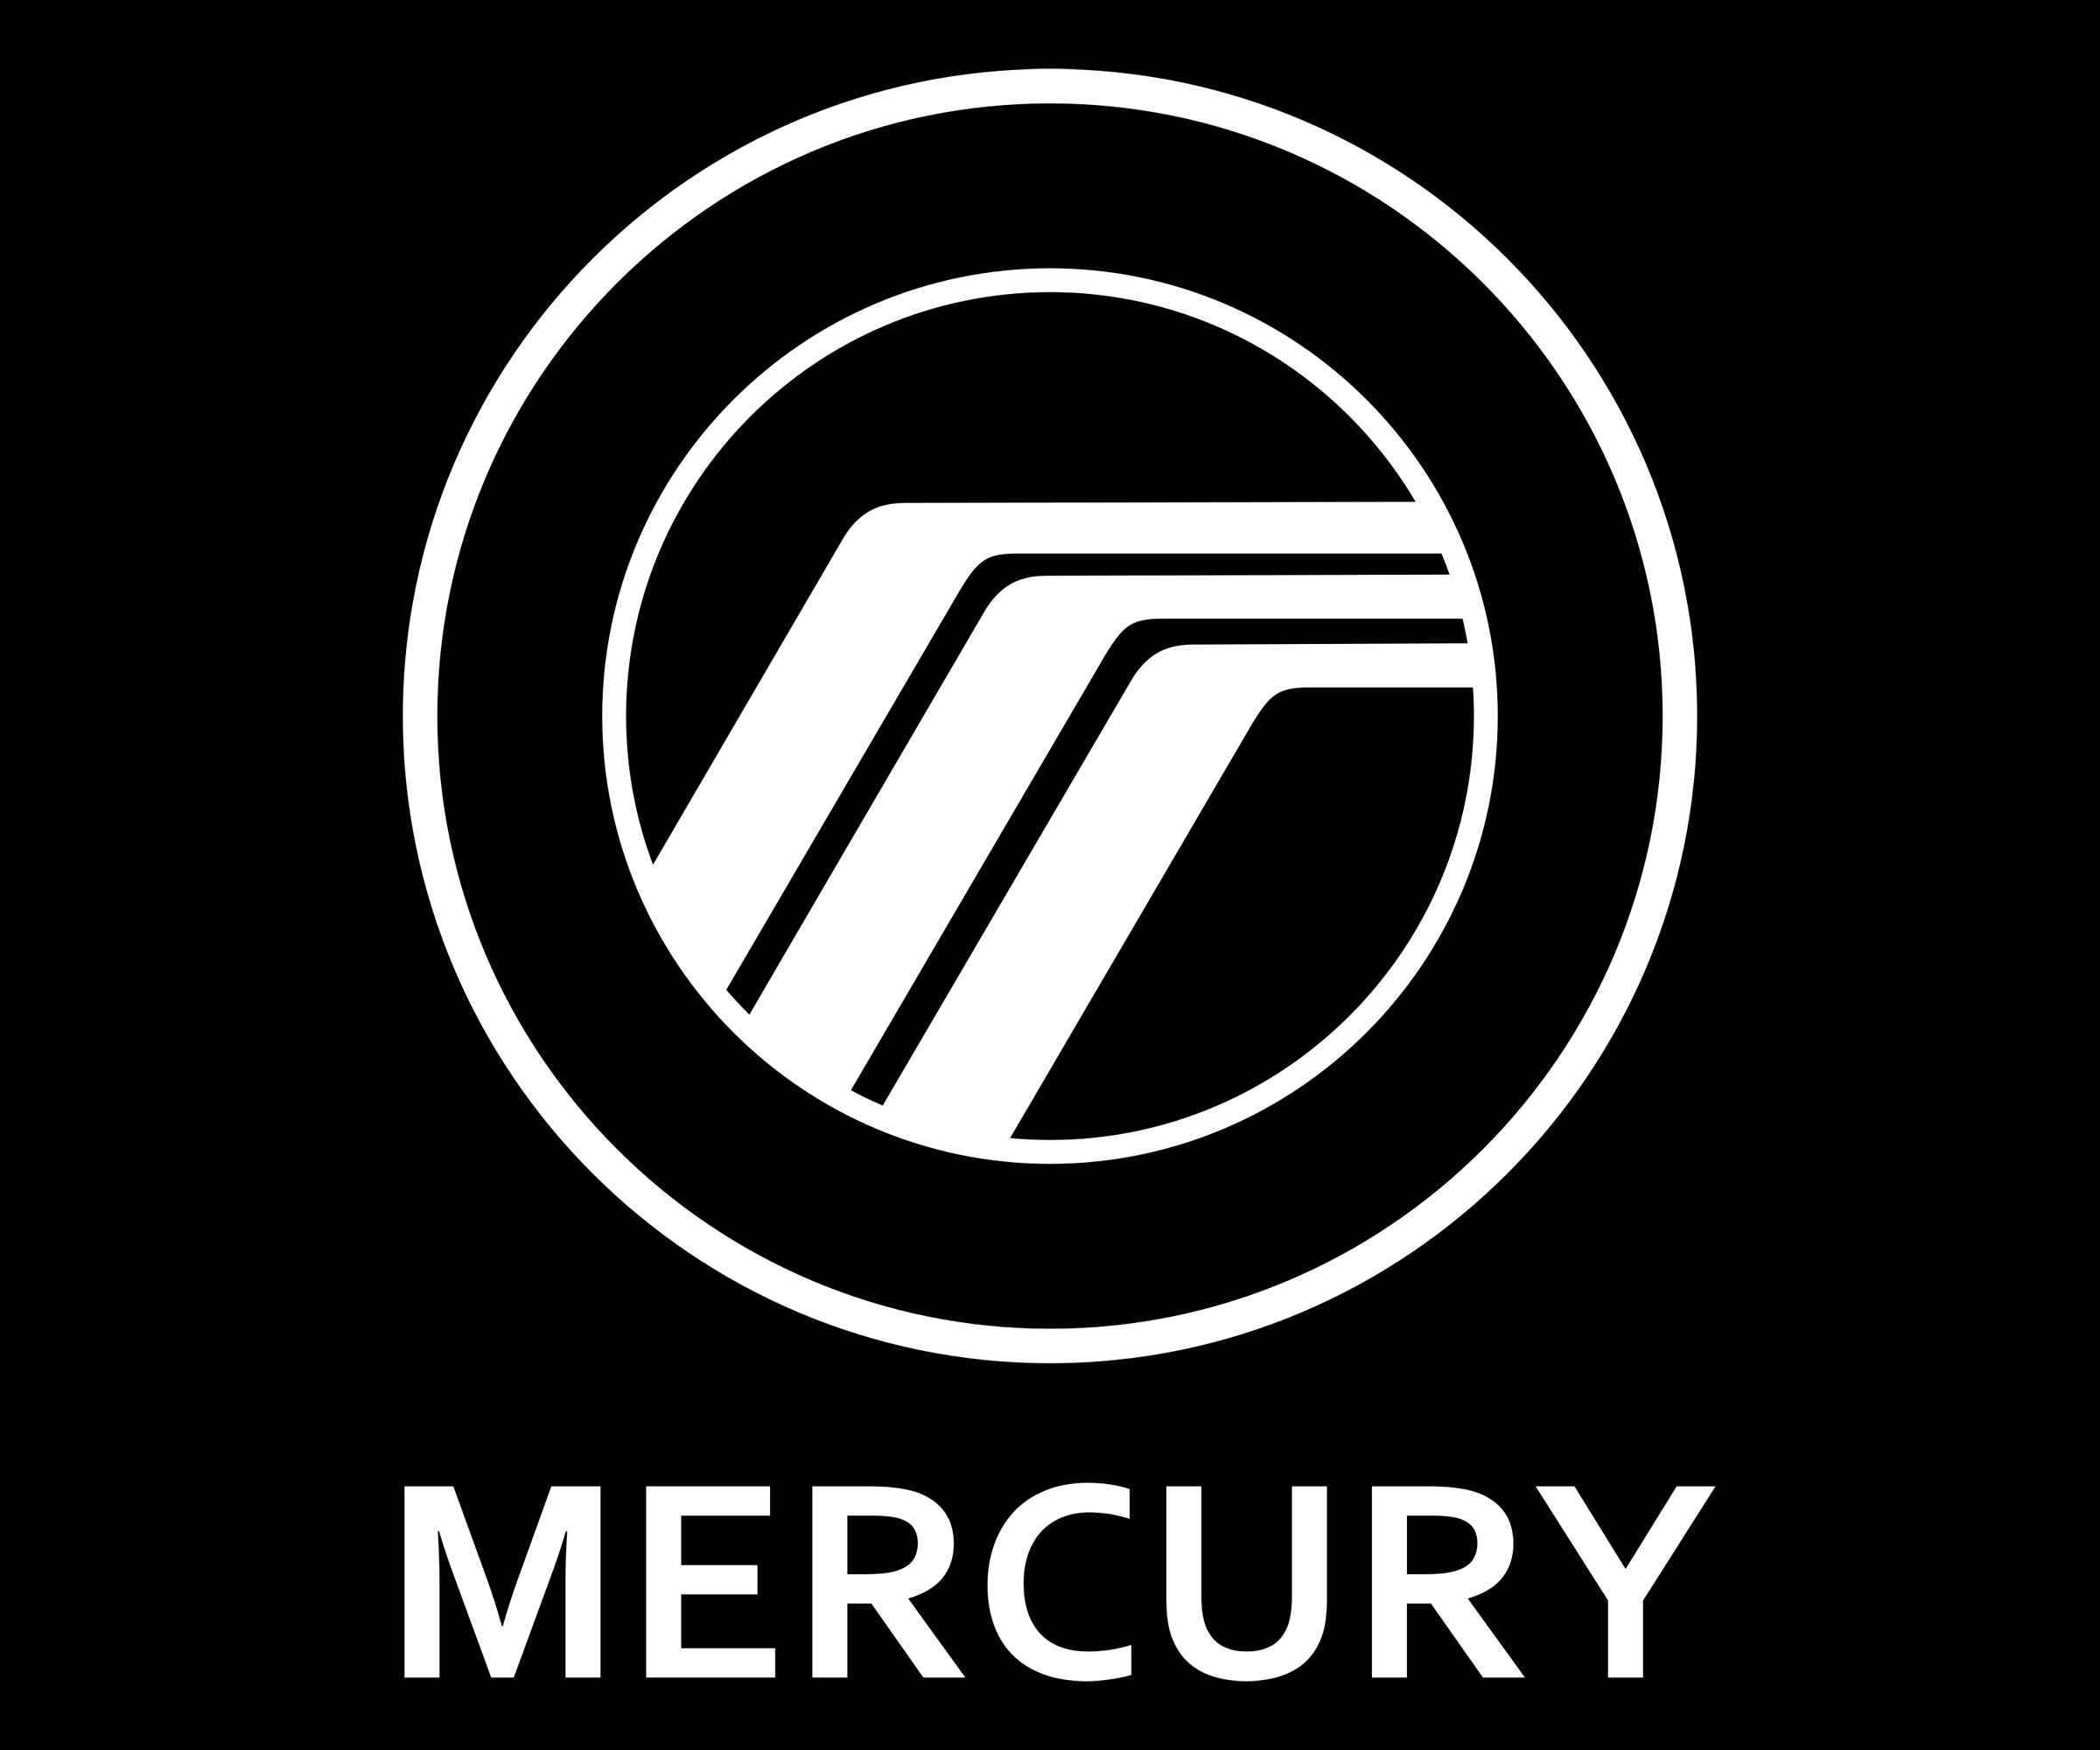 Mercury Logo - Mercury Logo Meaning and History, latest models | World Cars Brands